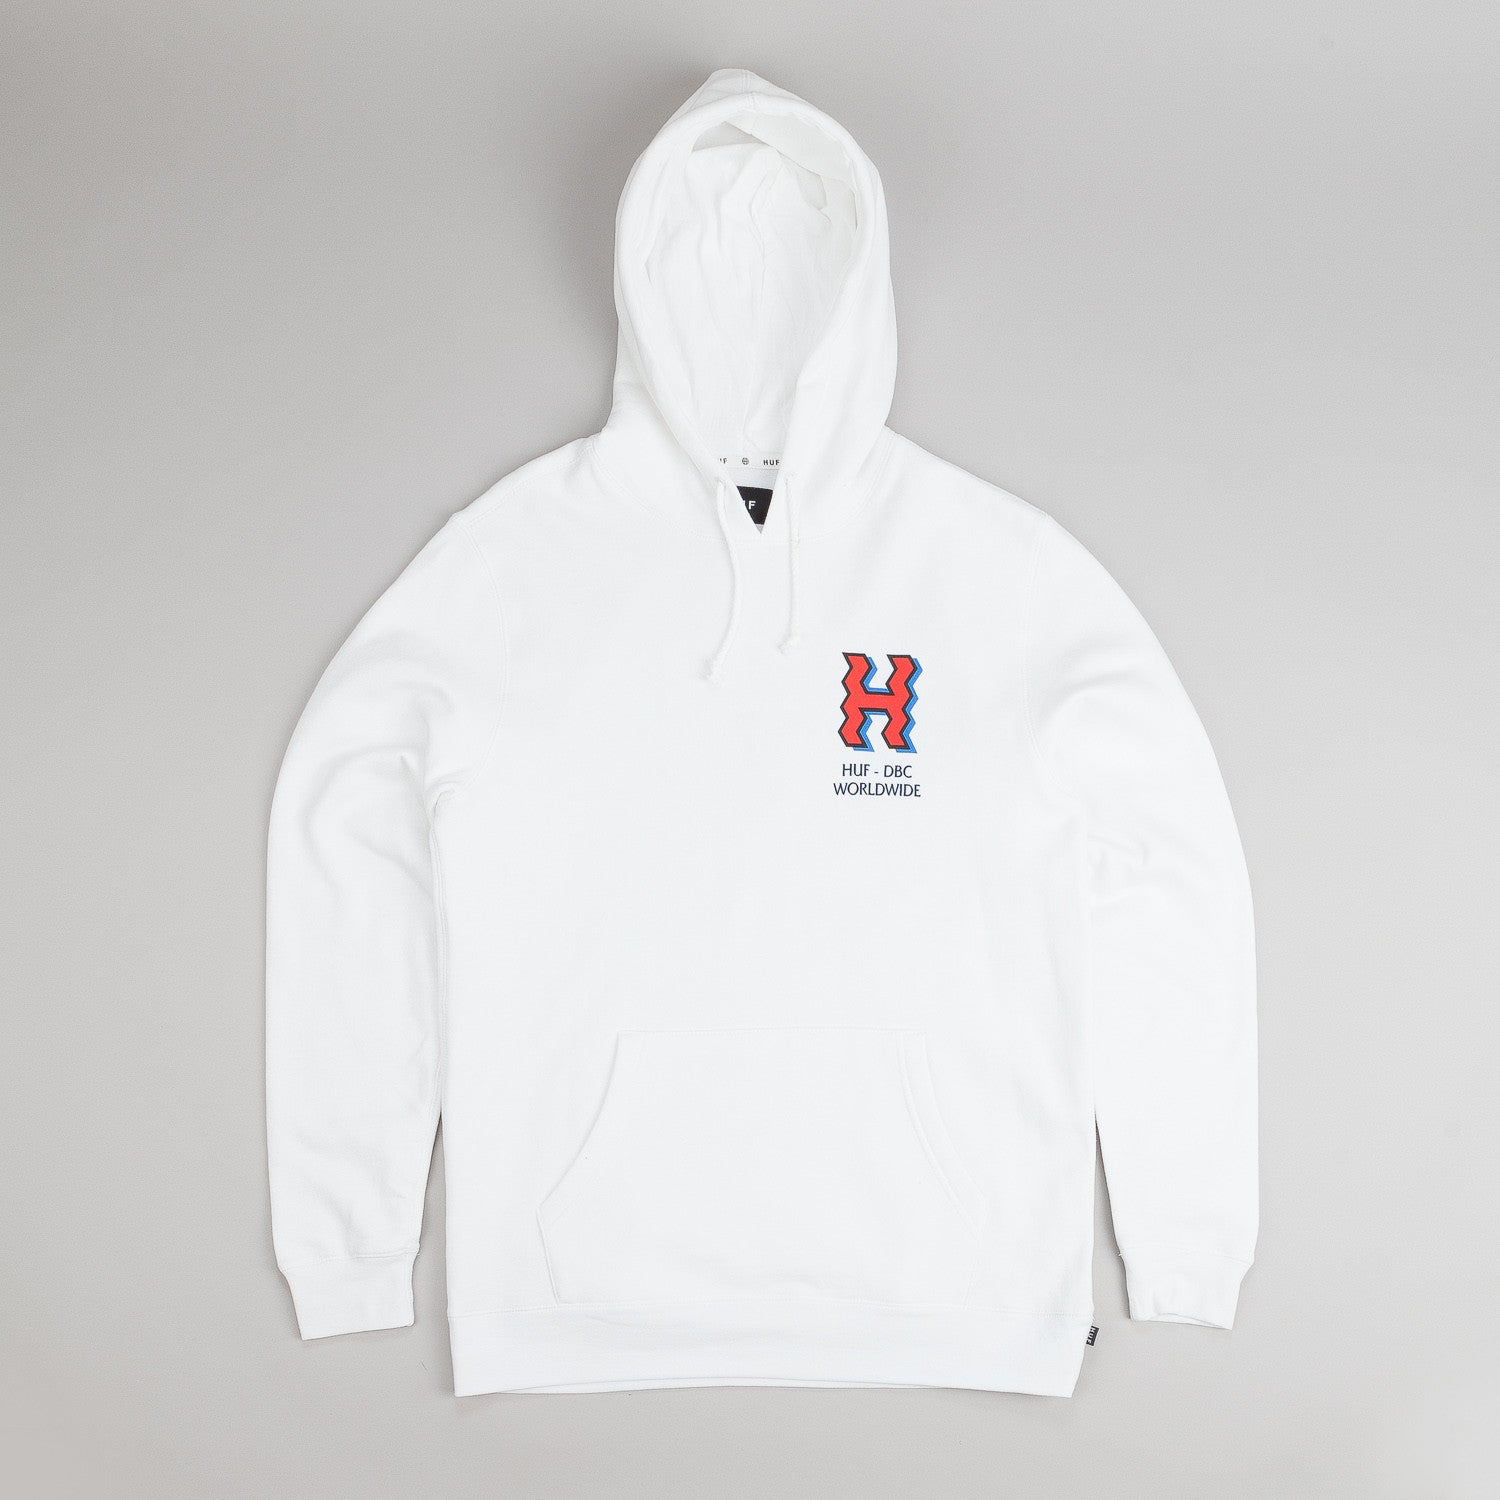 Huf Crooked H Hooded Sweatshirt  - White